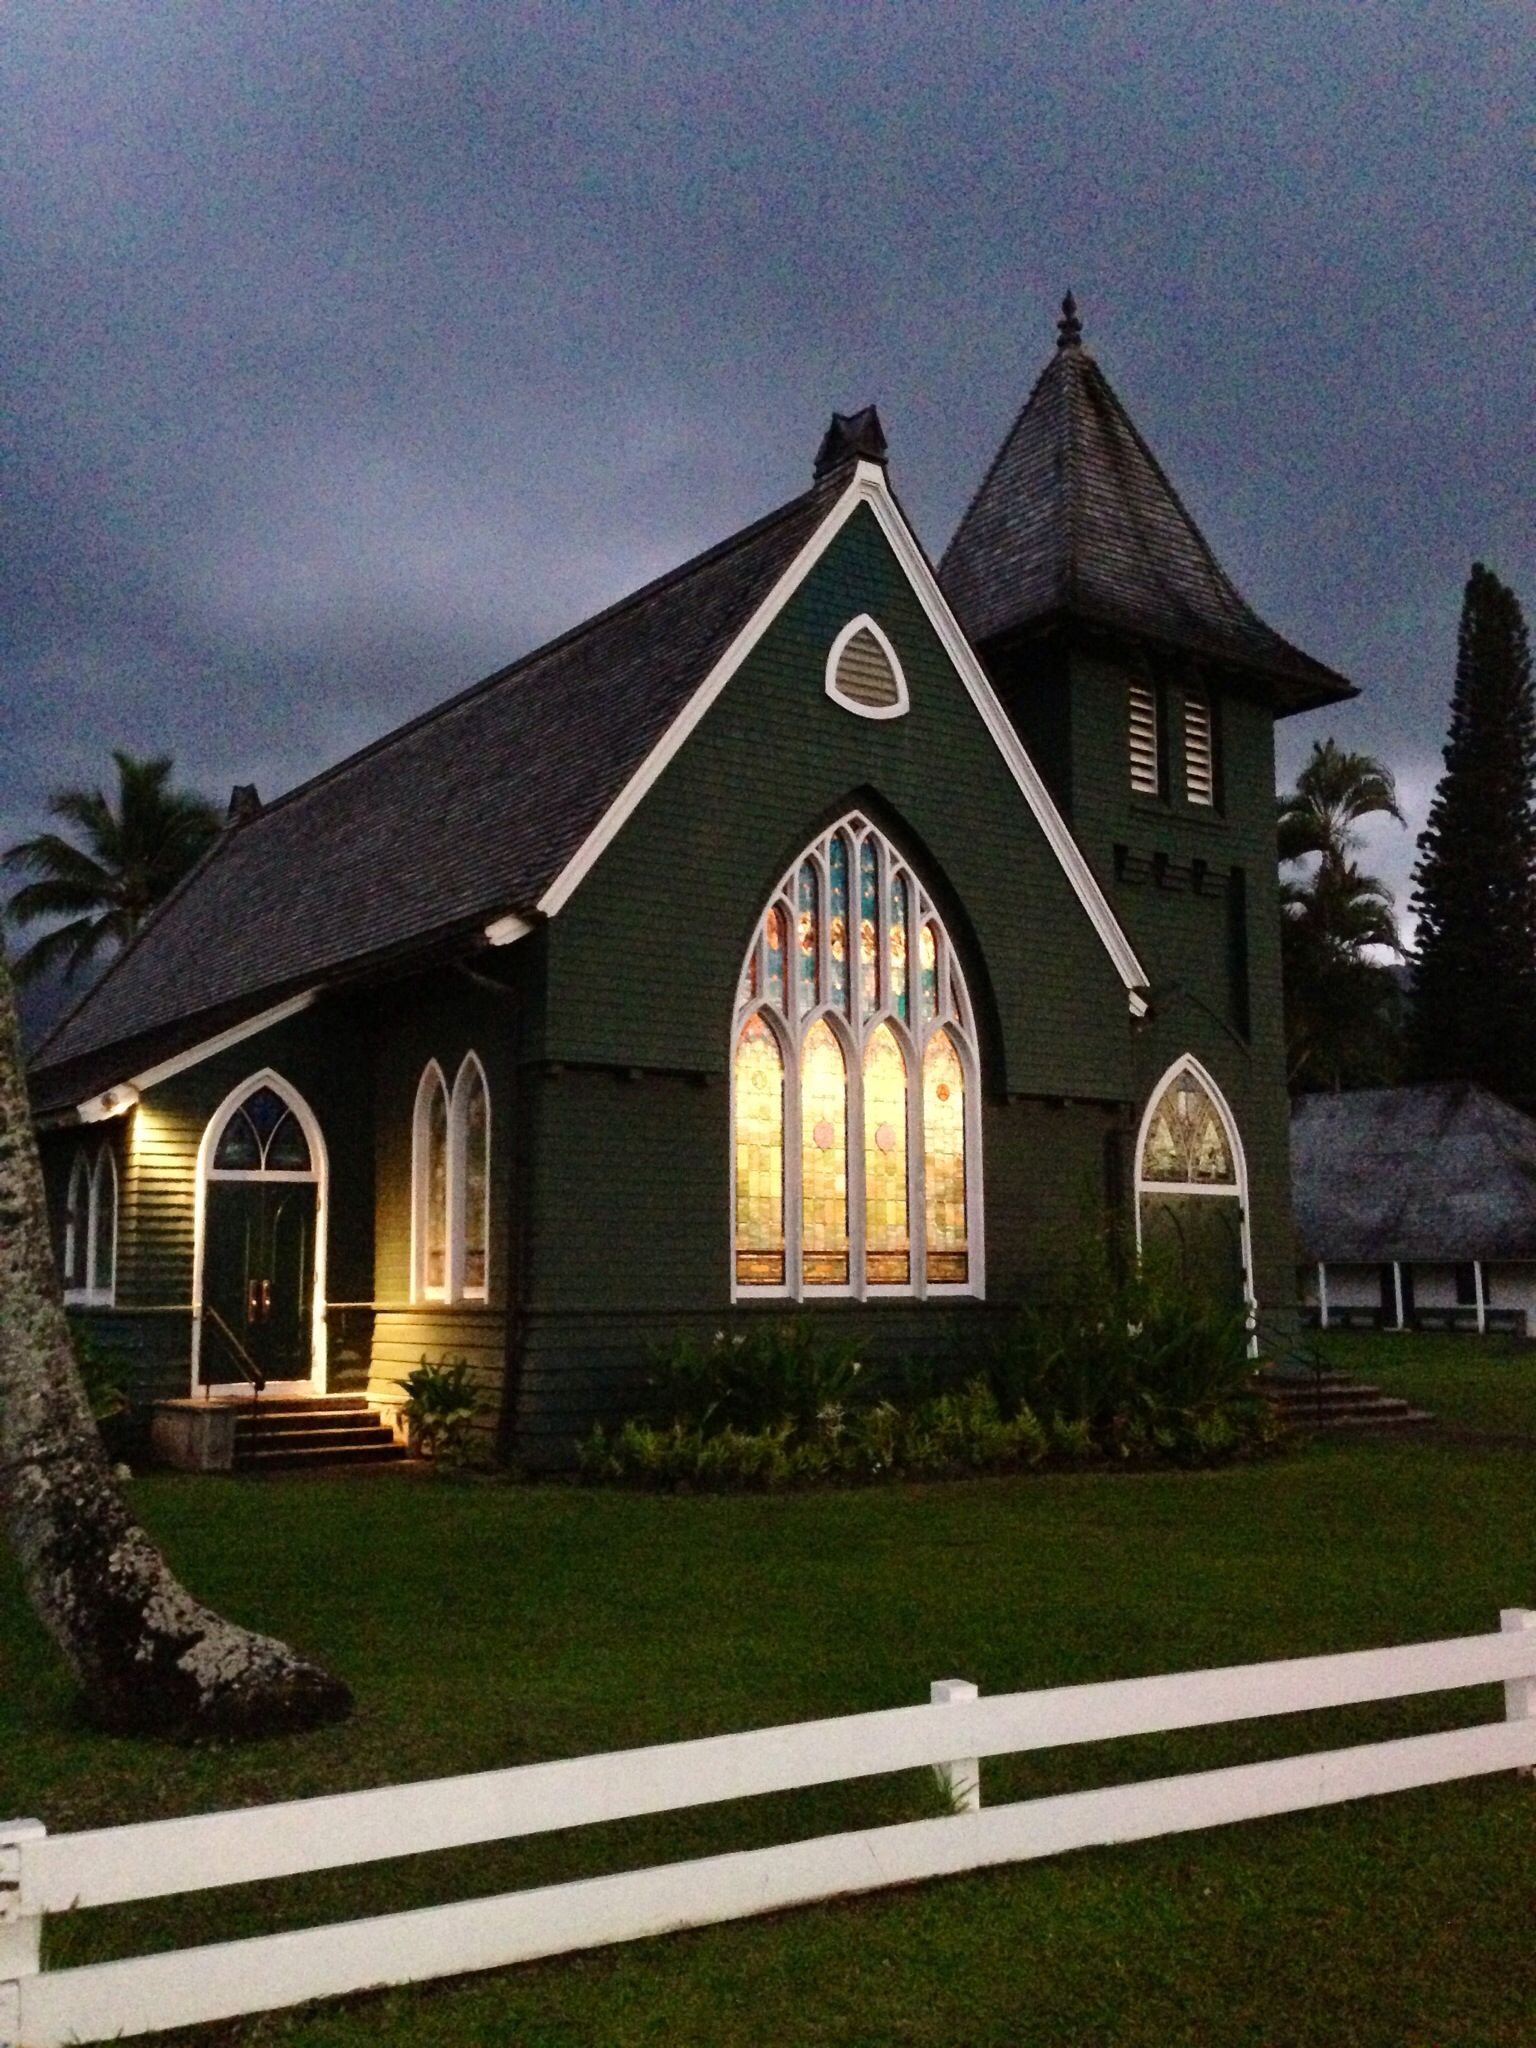 Hanalei Kauai Hawaii church Architecture house, Church